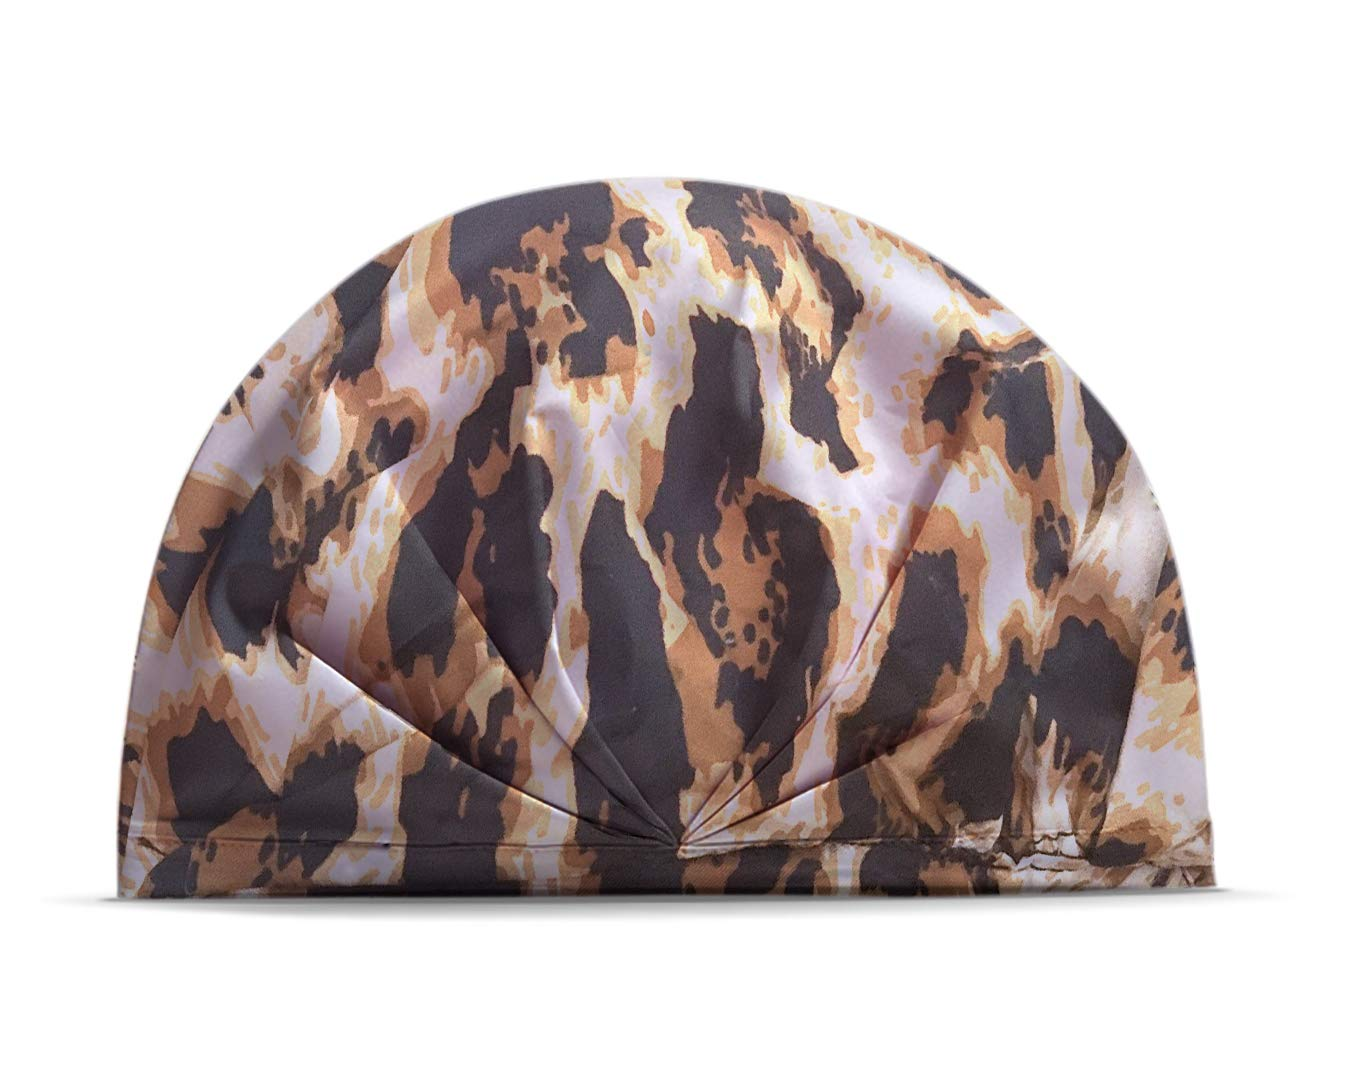 THE SUNNY FACTORY Shower Cap, Overnight Hair Treatment Mask Cap for Deep Conditioning, Thermal Heat Cap − Steaming Haircare Therapy, Oil Treatments, Hair Mask Therapy − Waterproof, Reusable (Leopard)